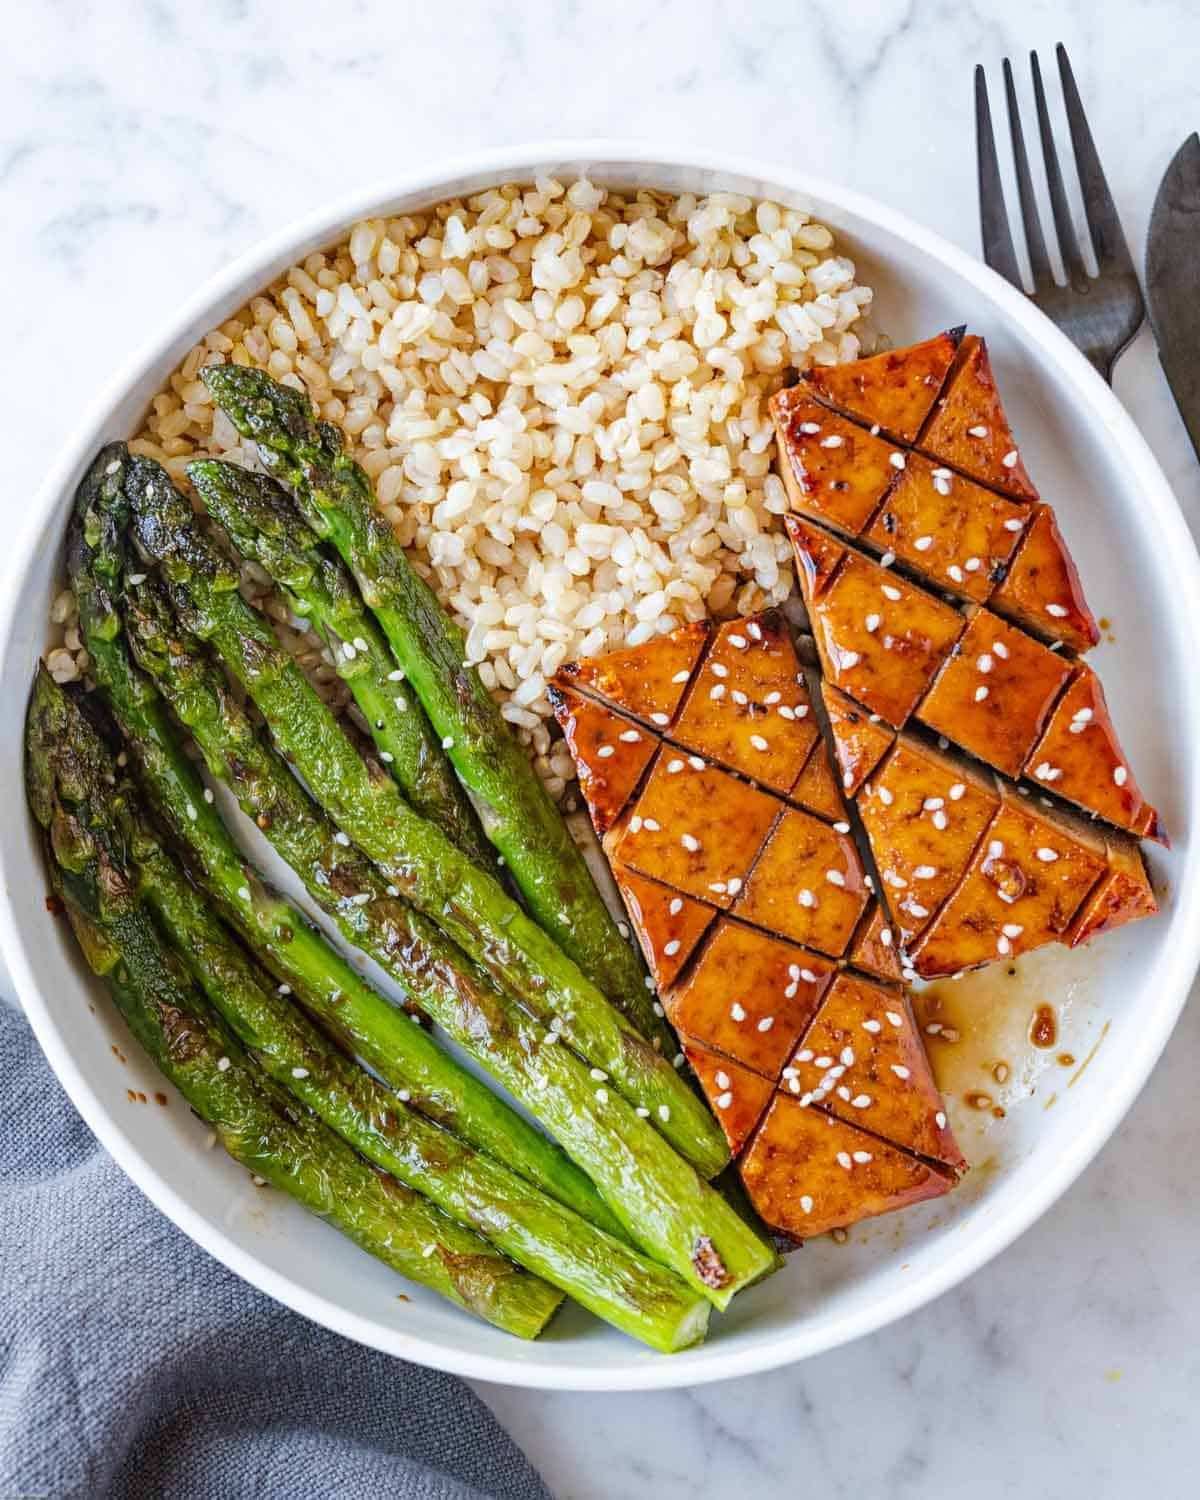 Browned asparagus spears with soy glazed baked tofu and brown rice.